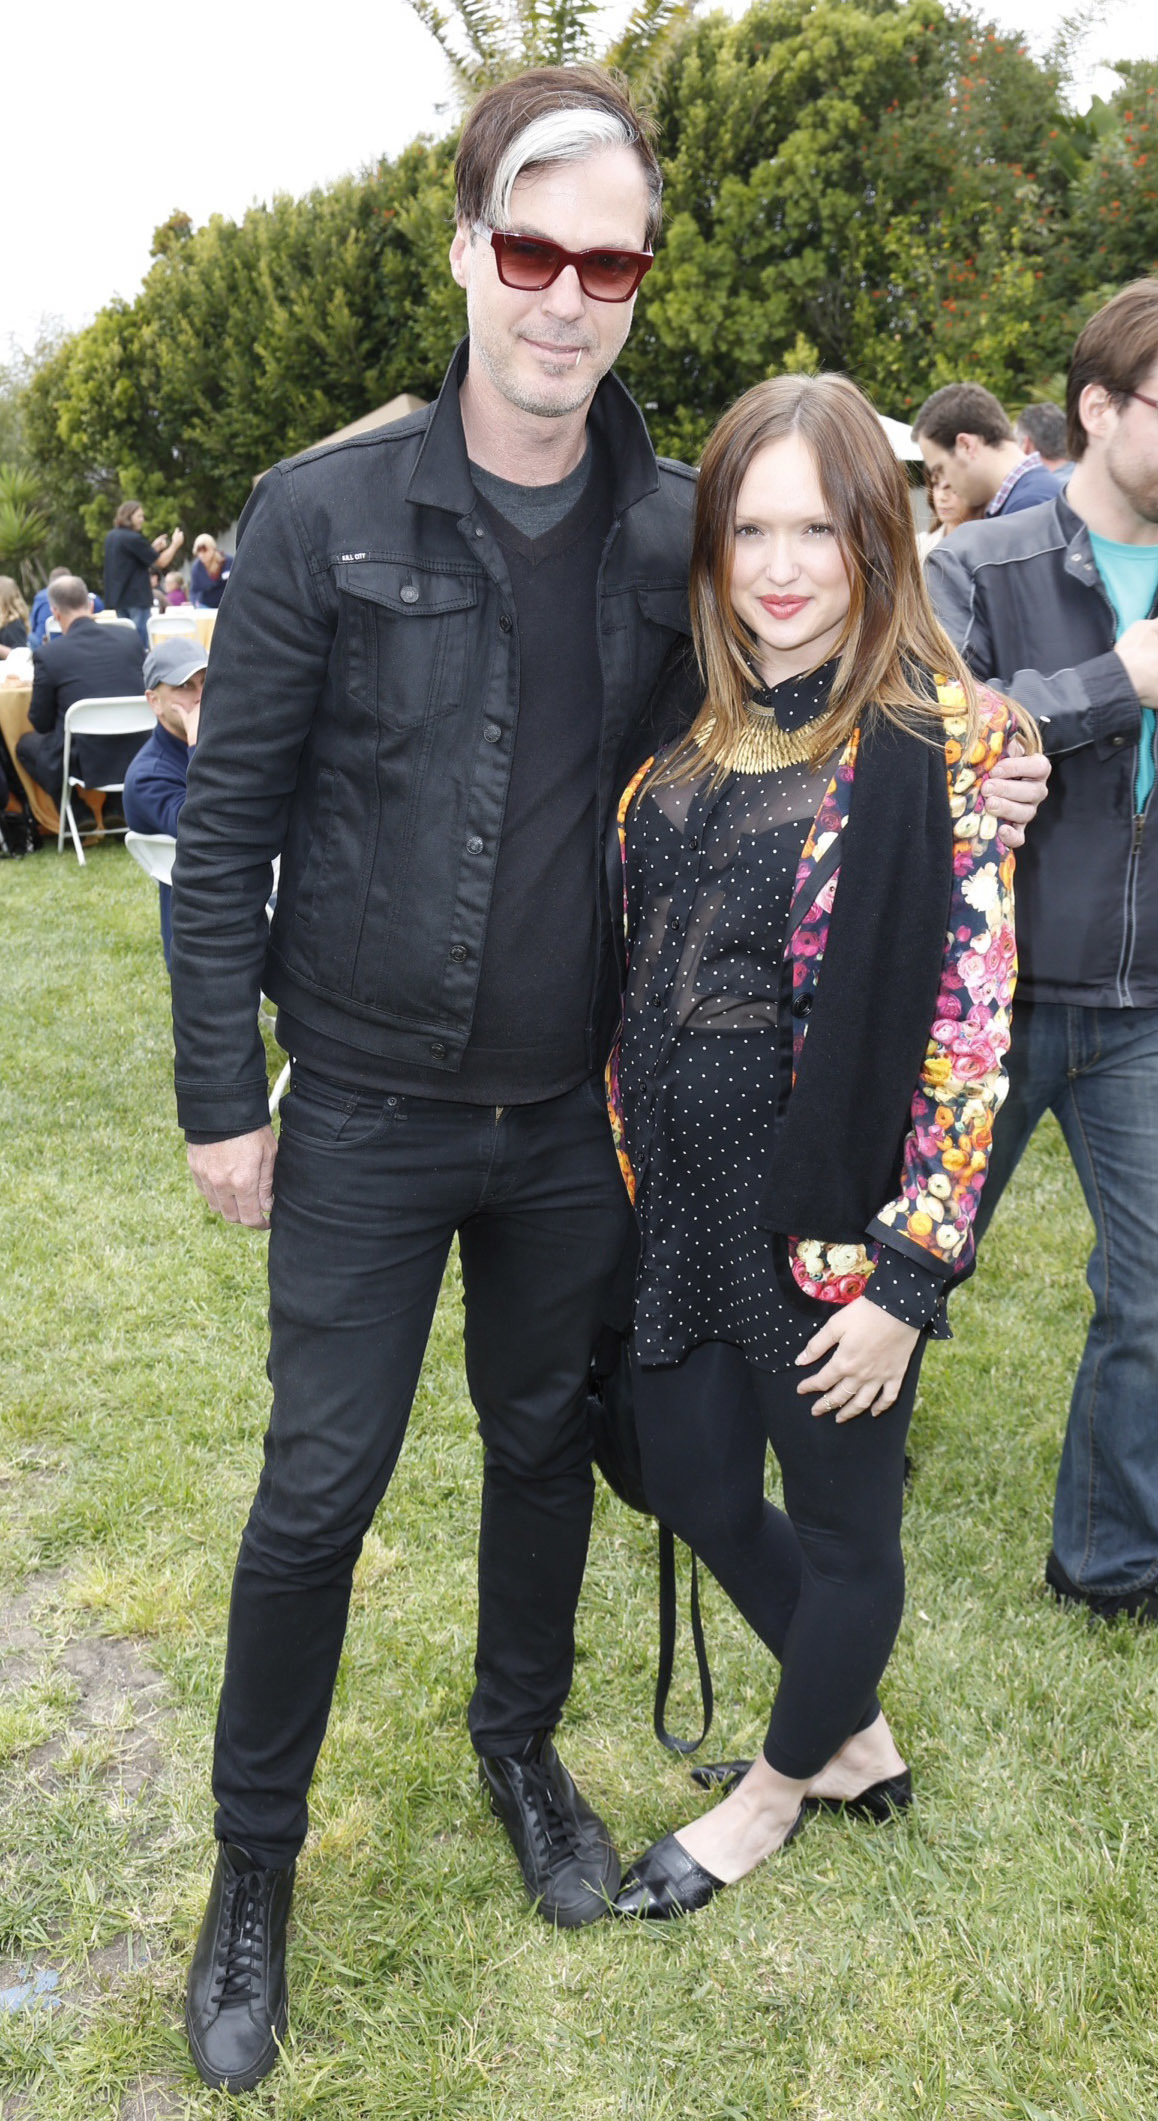 Michael Fitzpatrick and Kaylee DeFer